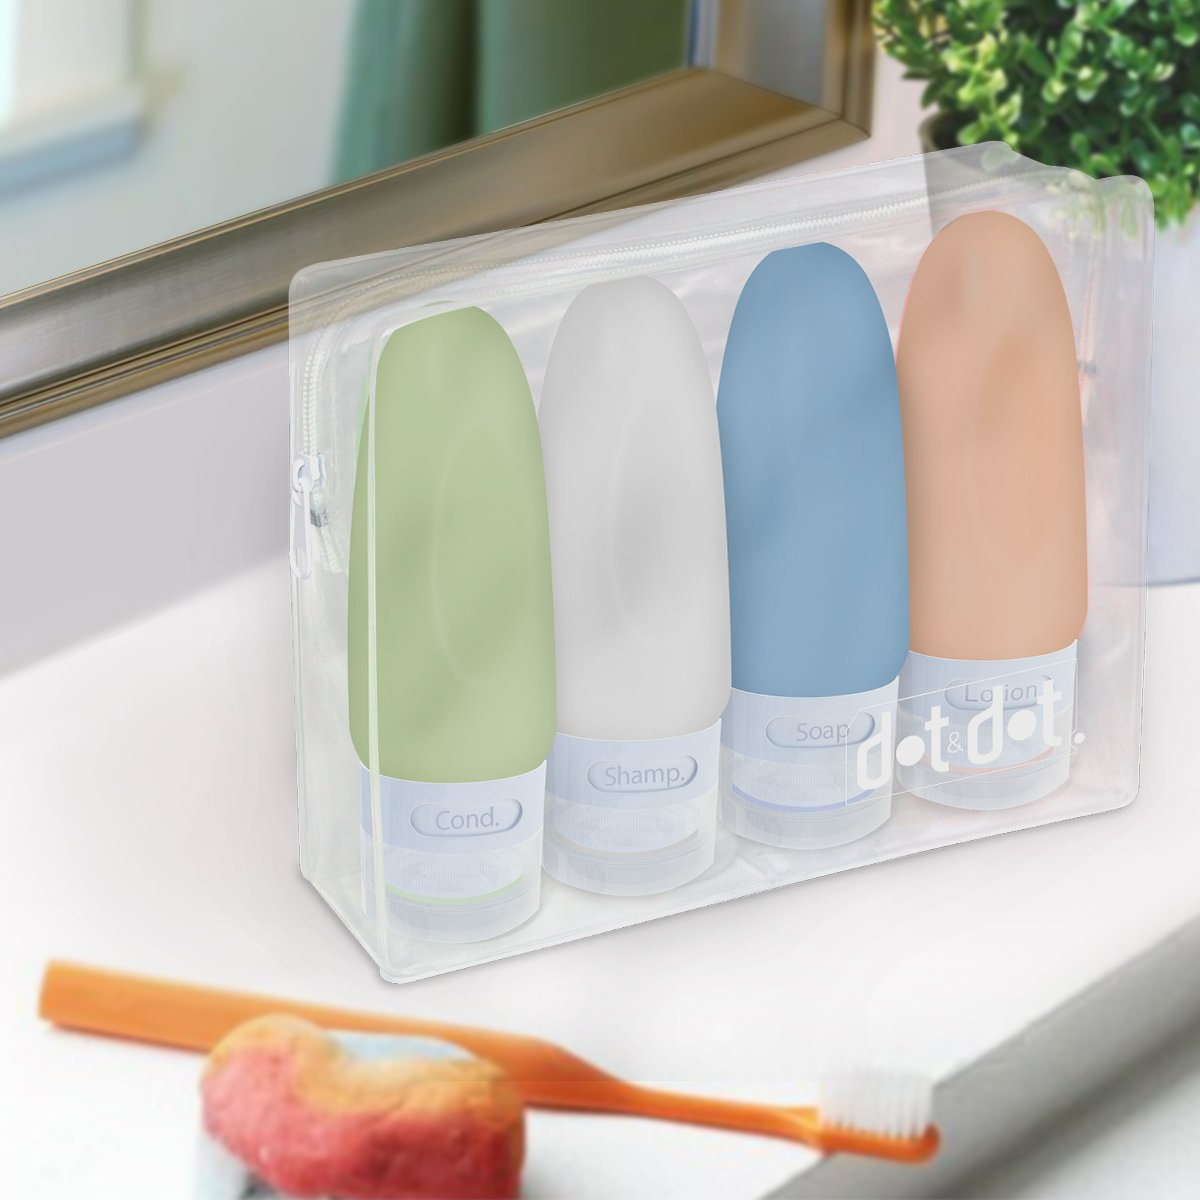 4 Leak Proof Travel Bottles - 3 oz Travel Containers for Travel Size Toiletries with TSA Quart Bag by Dot&Dot (Image #5)